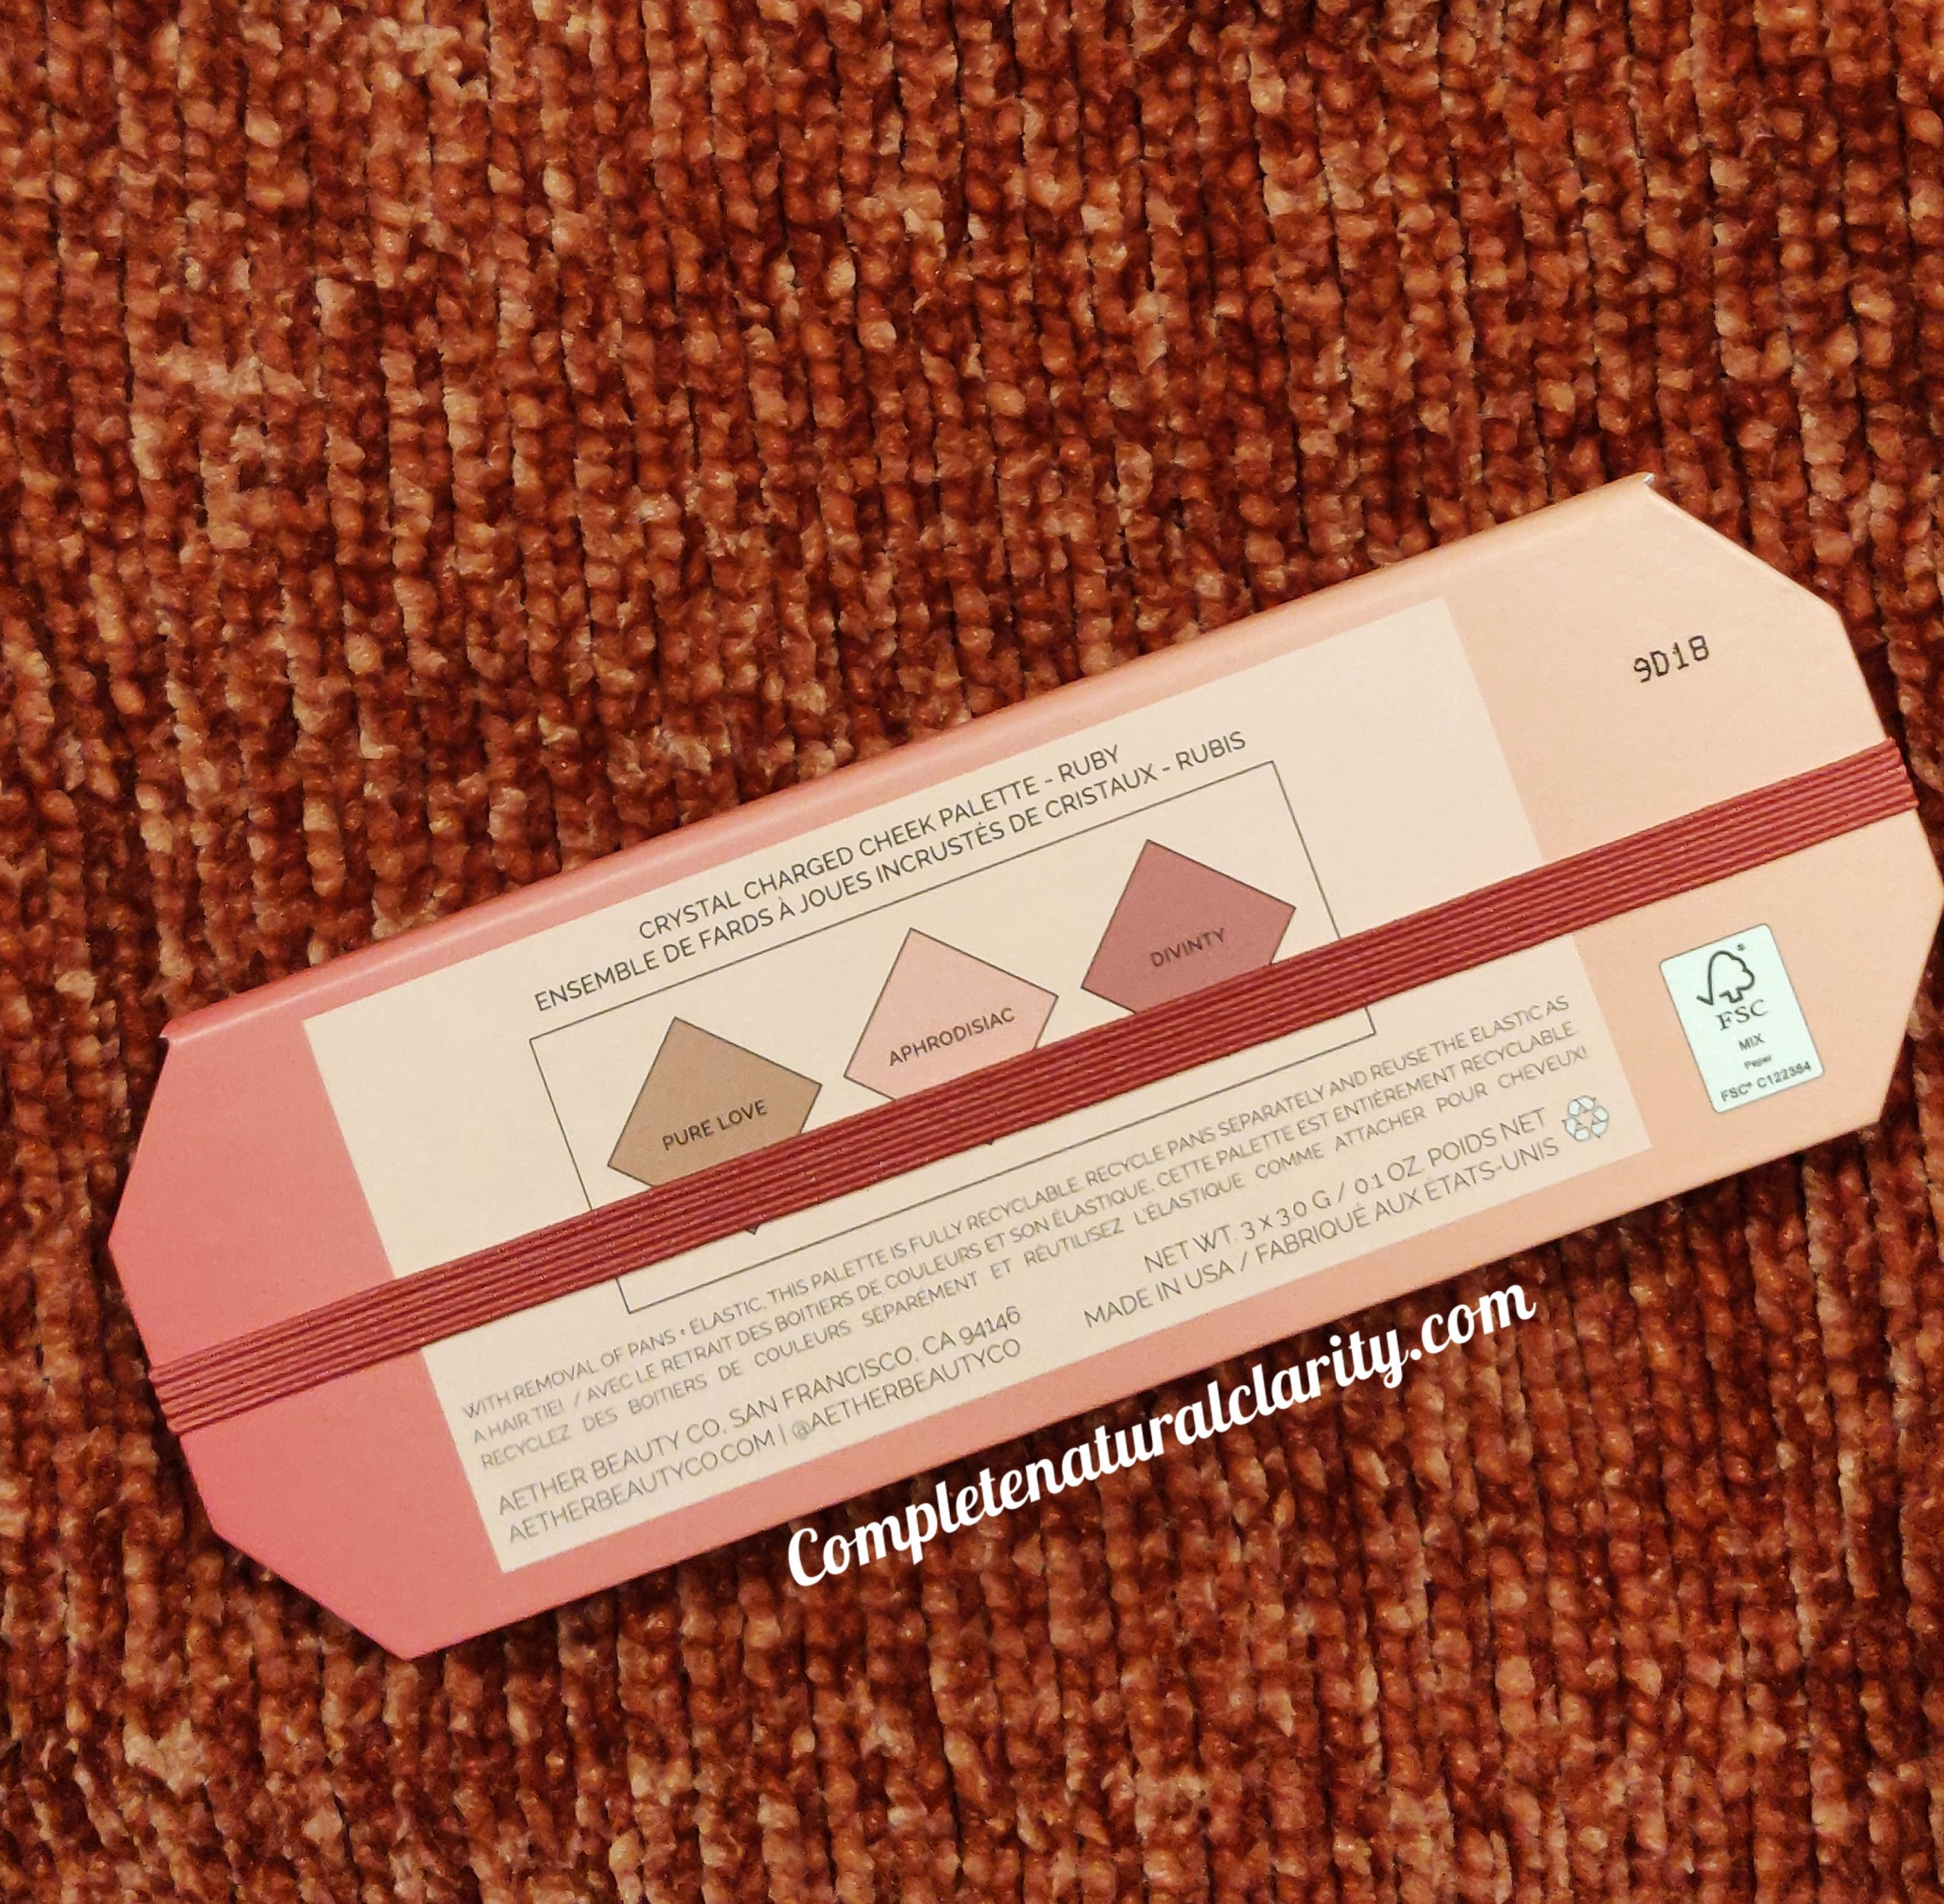 Aether Beauty Crystal Charged Cheek Palette Review